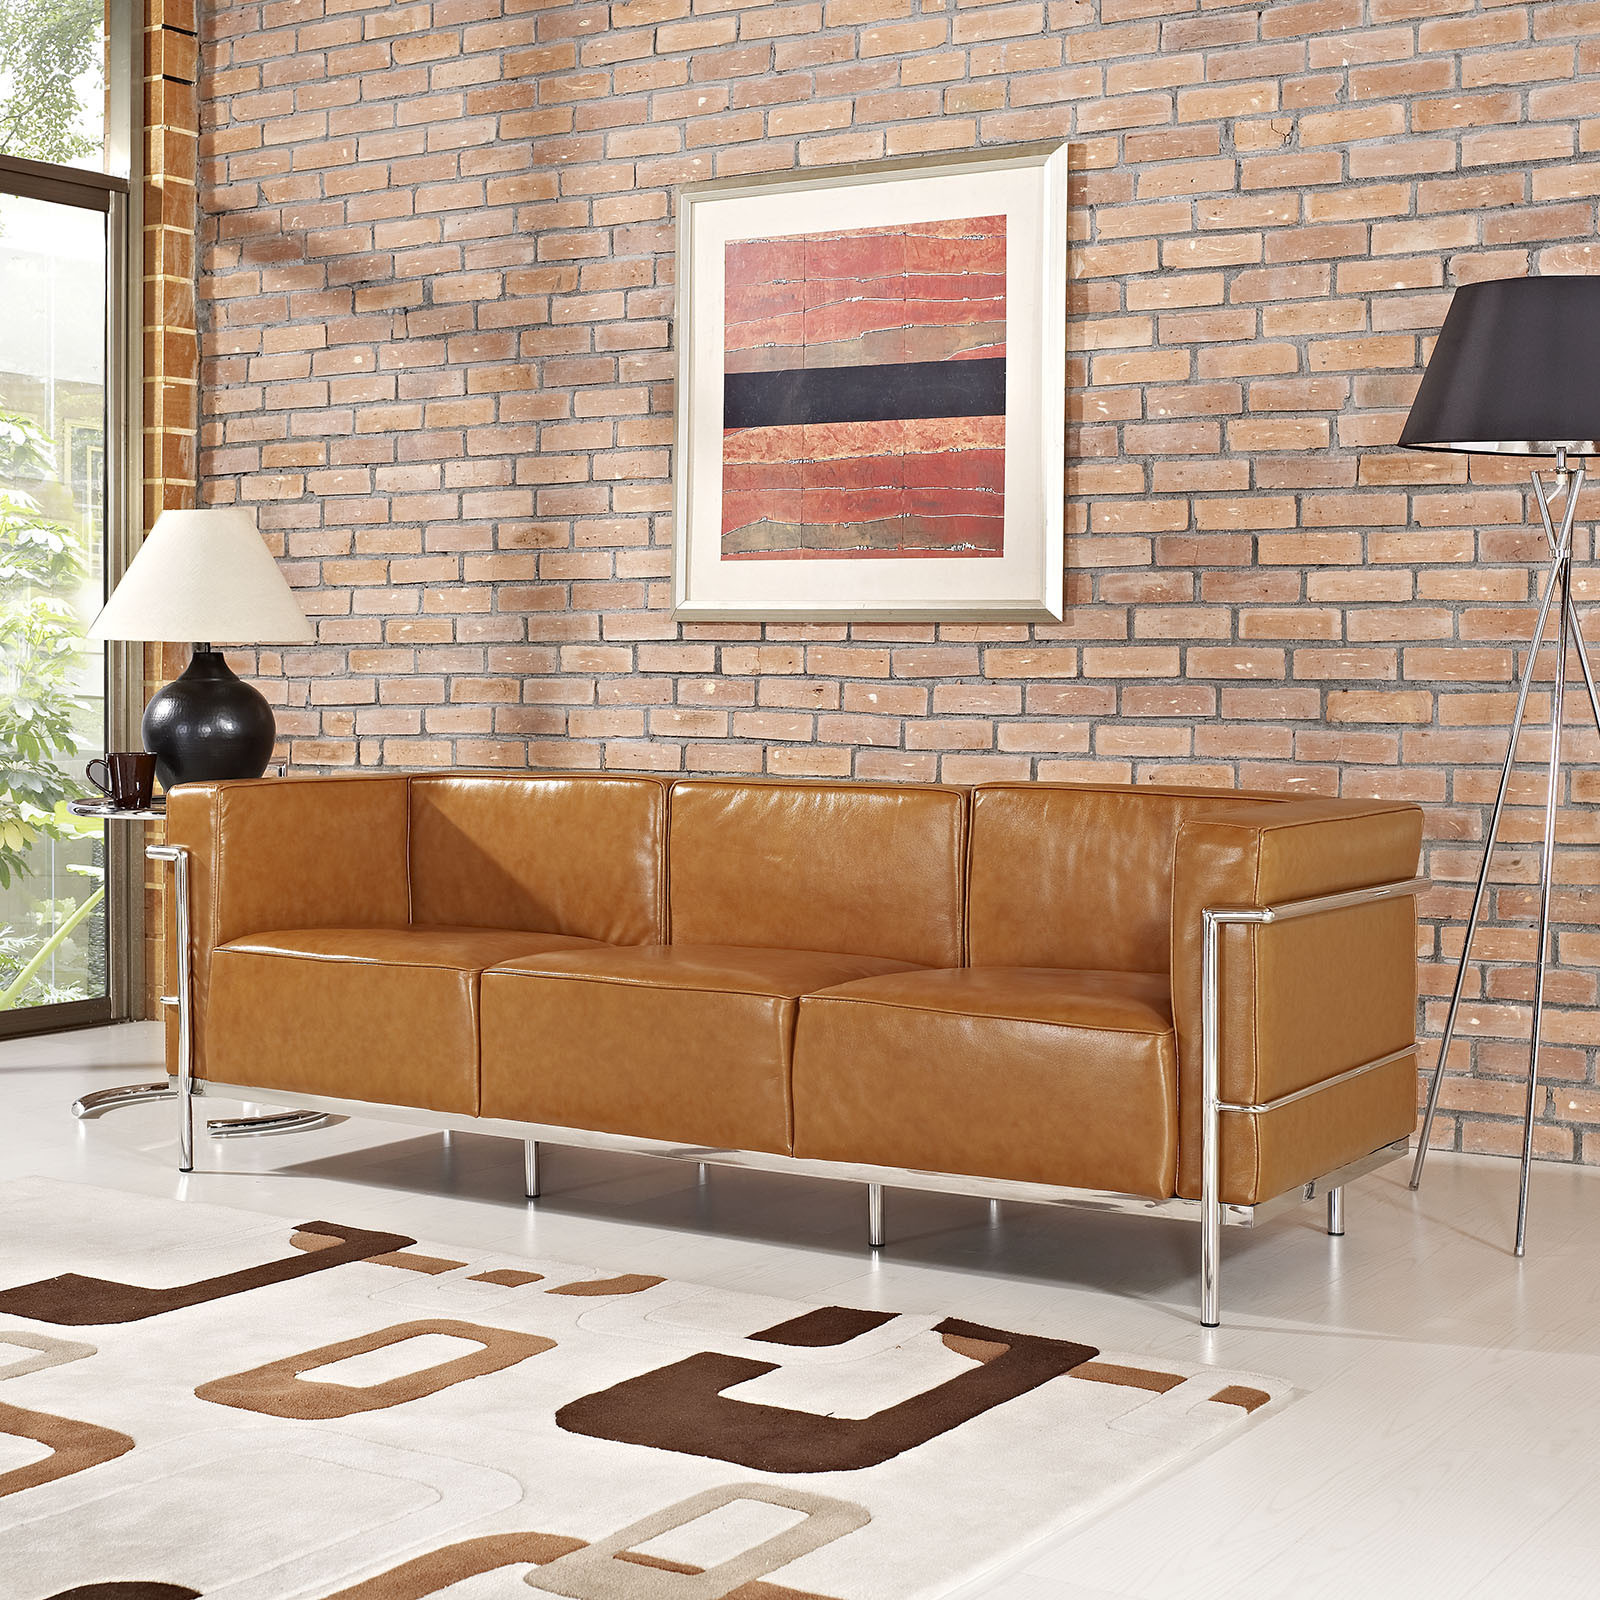 5 couch styles for your living room from boho to industrial for Industrial couch